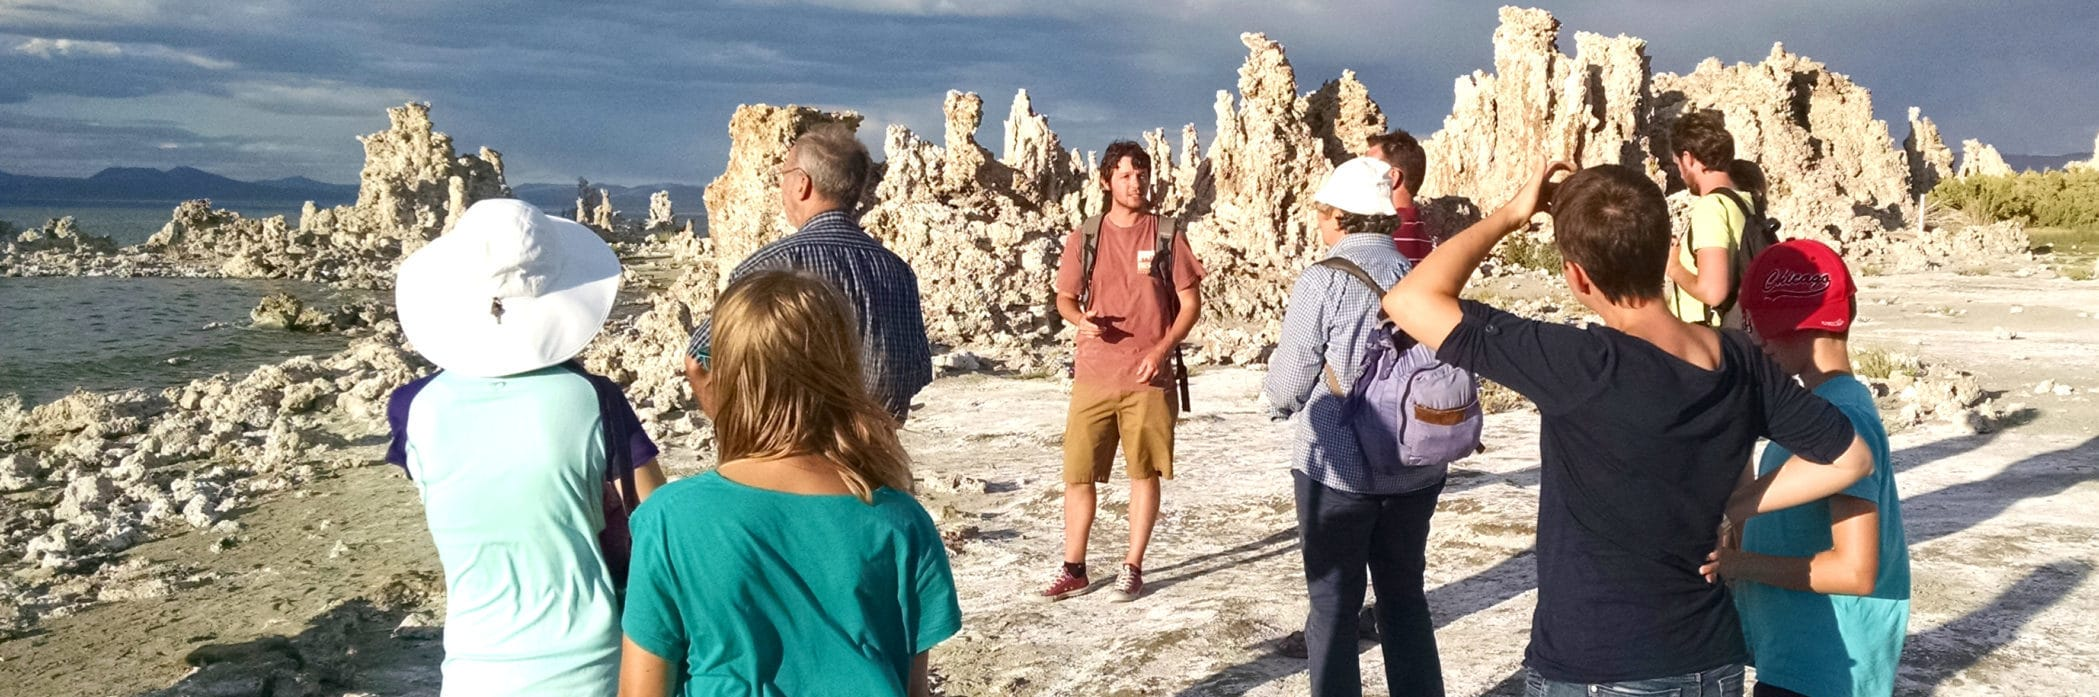 Tour guide talking to nine people at the shore of Mono Lake with tufa towers in the background, dramatic storm clouds, and the shoreline nearby.